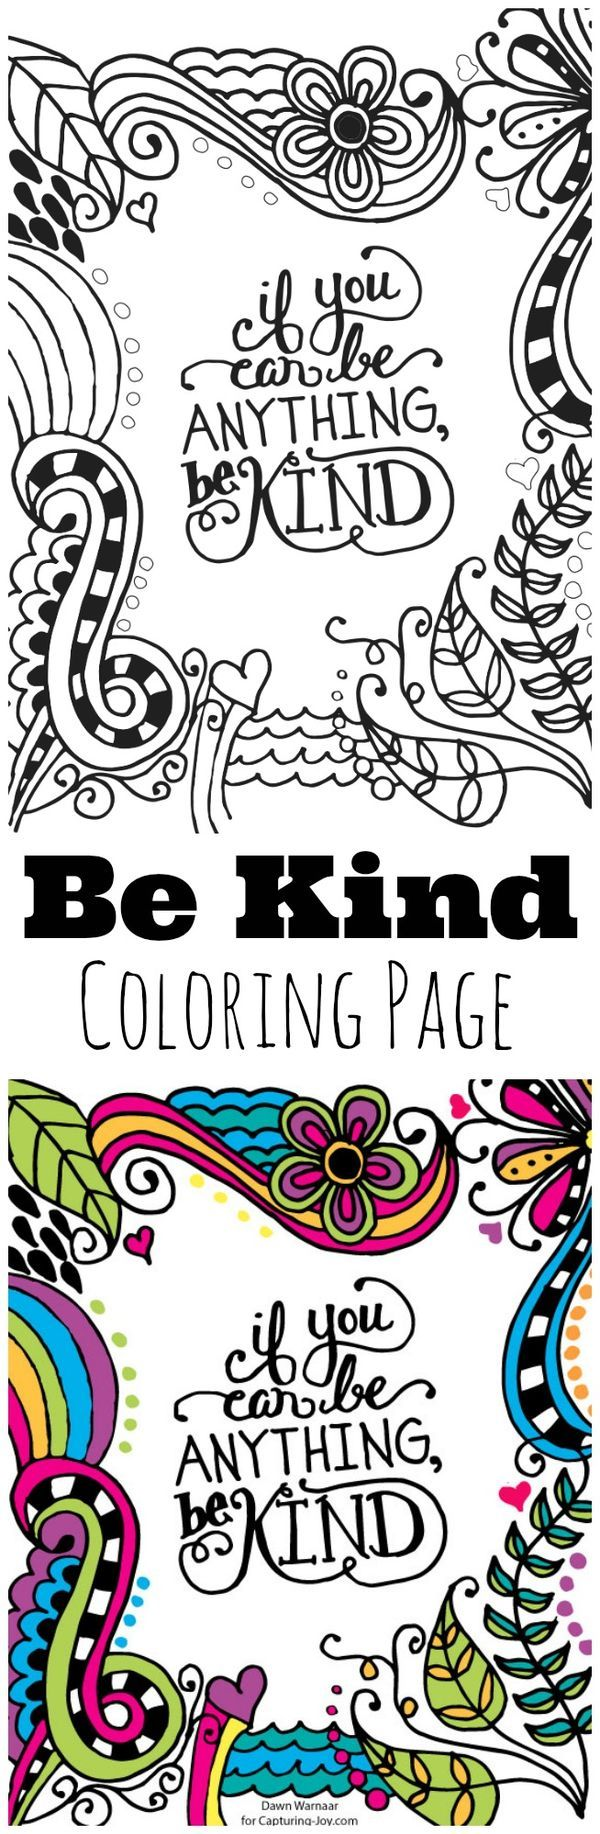 If You Can Be Anything, Be Kind | Coloring pages, Coloring ...